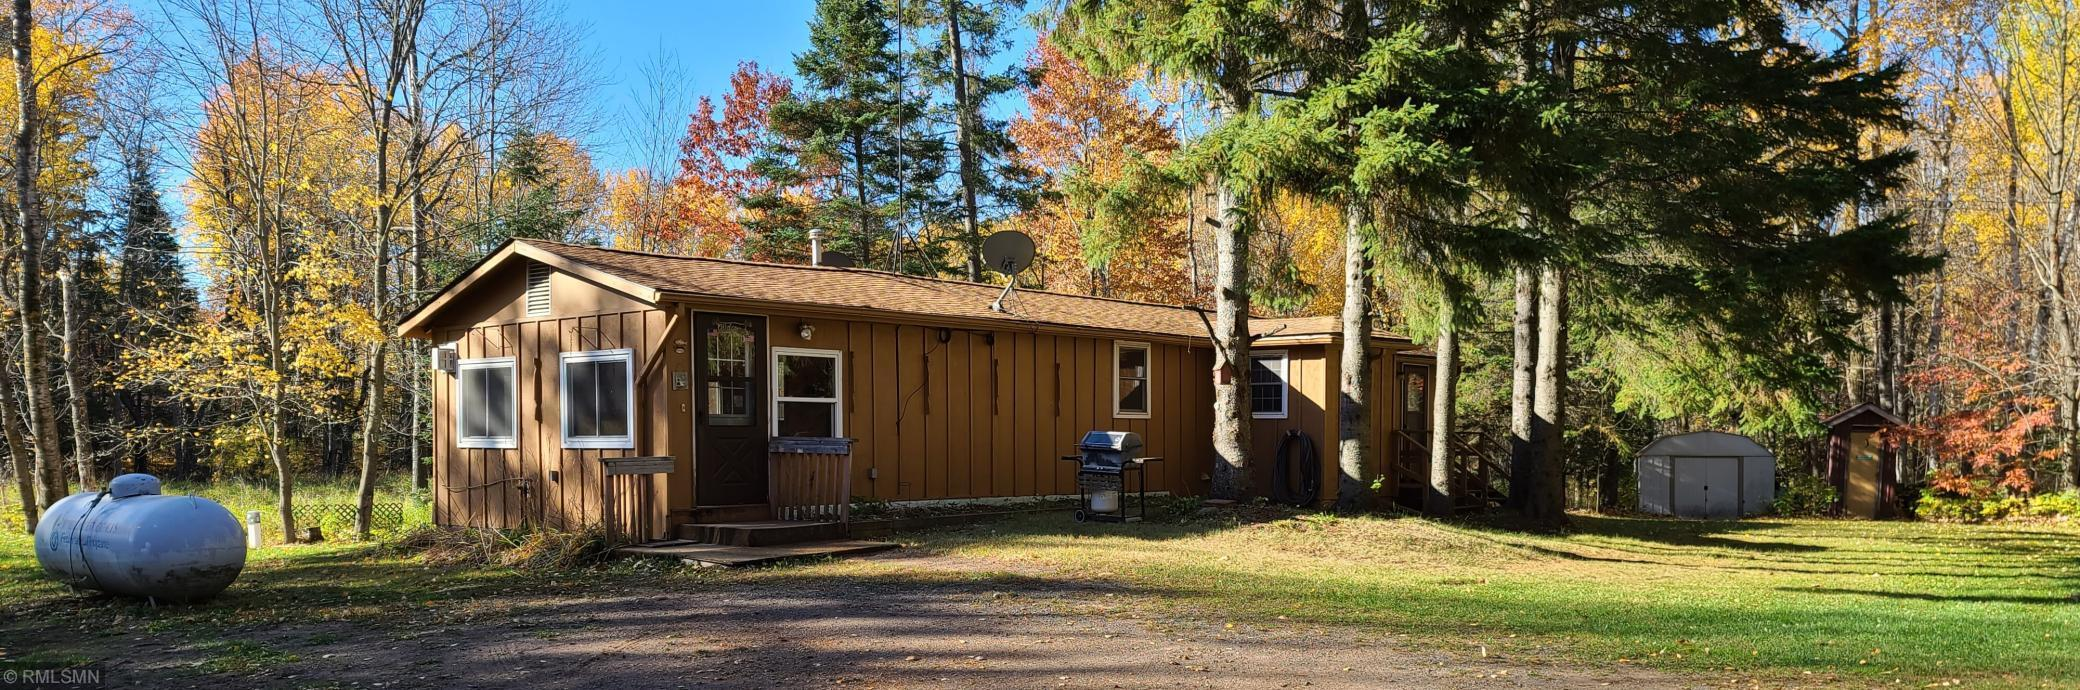 16930 Yellow Birch Road Property Photo - Hinckley, MN real estate listing